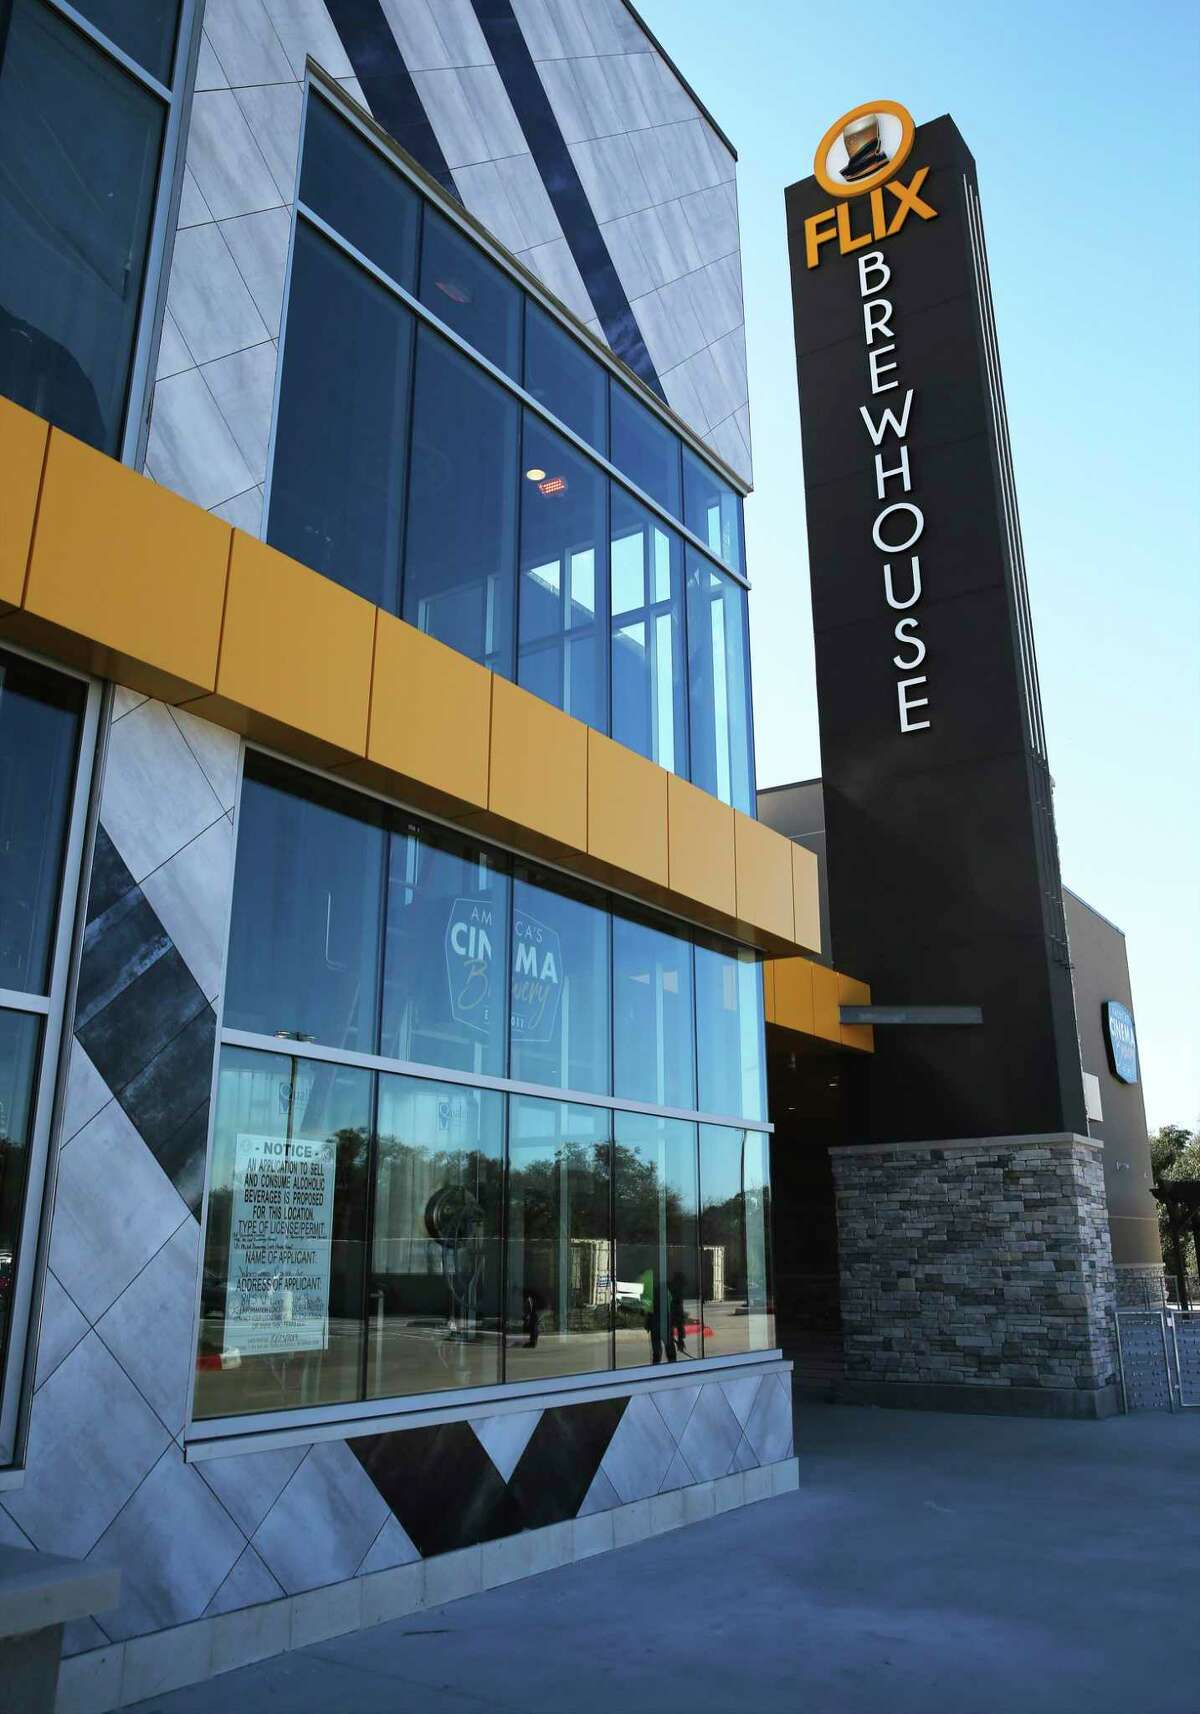 A first look at the new Flix Brewhouse dine-in movie theater, which opens Wednesday on San Antonio's far West Side. The Round Rock-based theater chain features an in-house microbrewery.